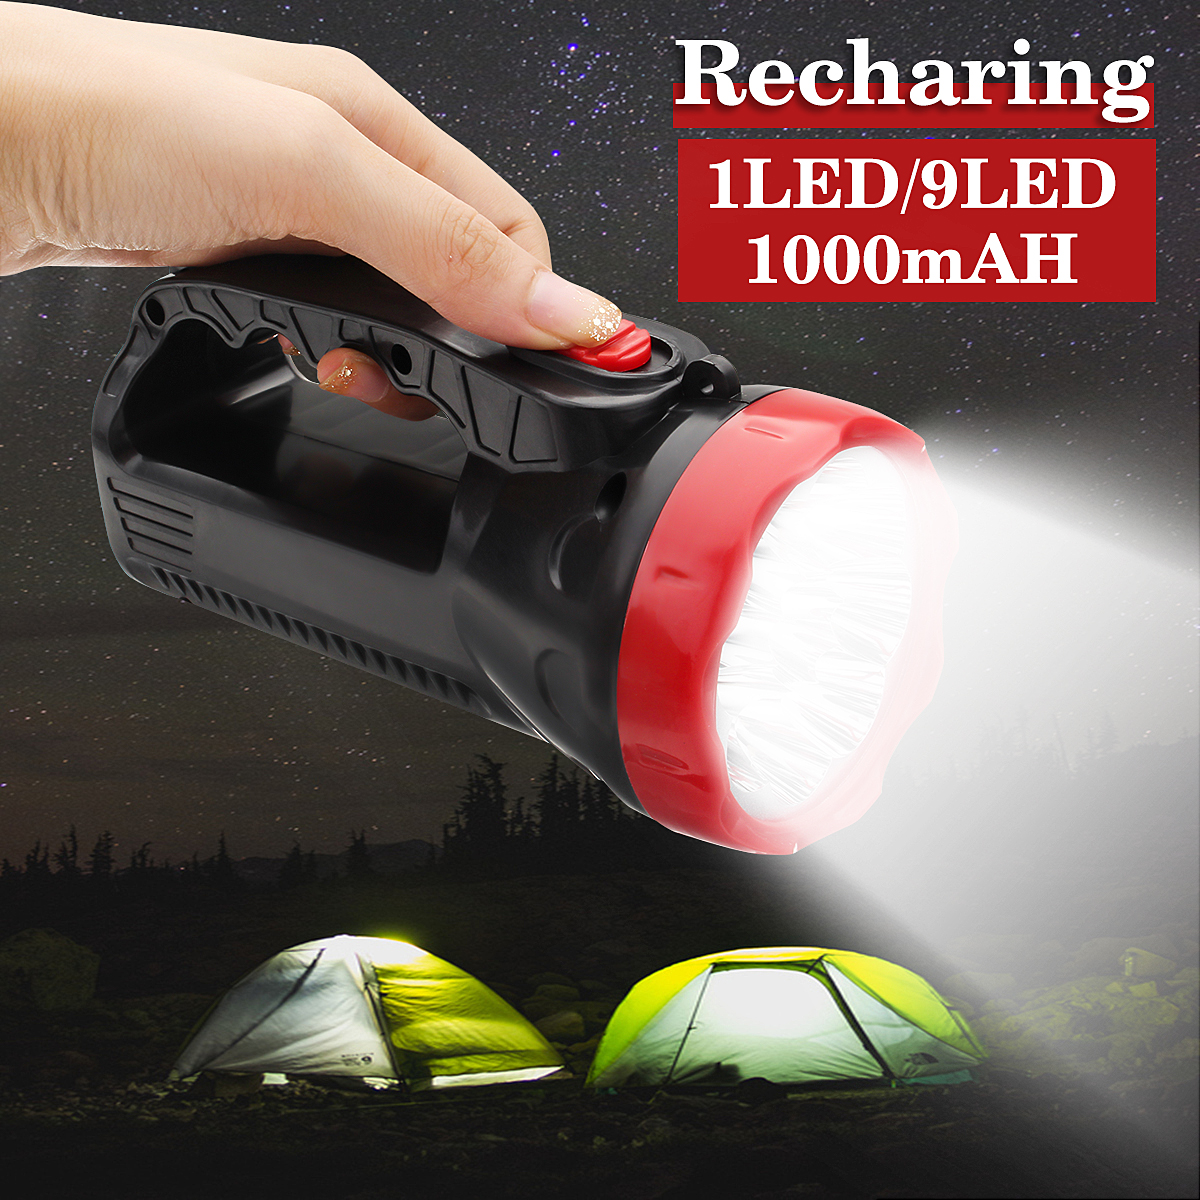 Super Bright Rechargeable 1 or 9 LED Lights Handheld Portable Flashlight Searchlight Lantern for Outdoor Camping TravelSuper Bright Rechargeable 1 or 9 LED Lights Handheld Portable Flashlight Searchlight Lantern for Outdoor Camping Travel